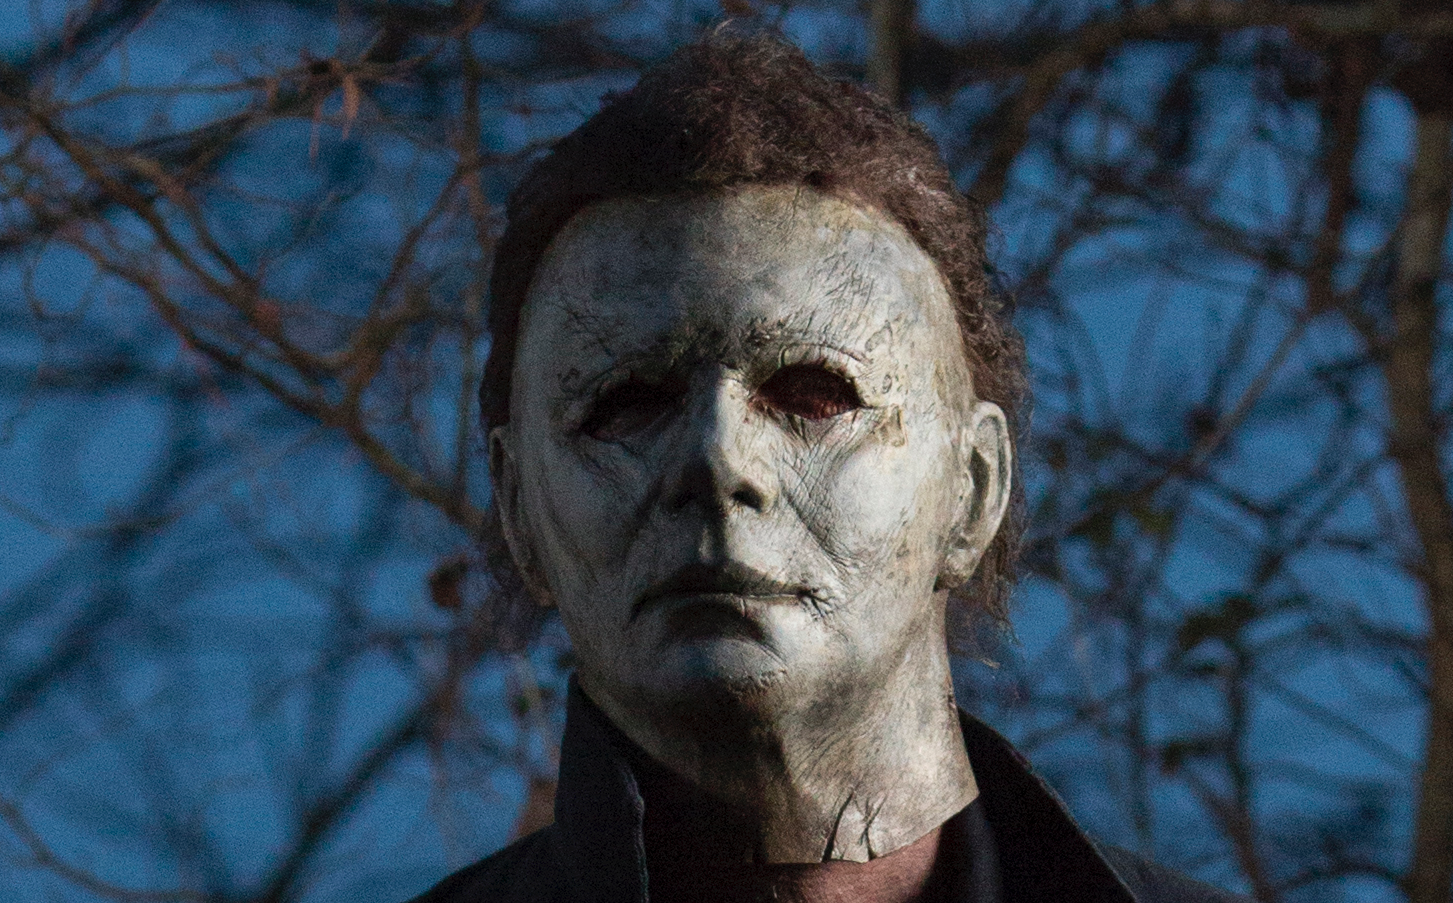 Halloween 2020 Expanded Score Expanded Edition of John Carpenter's 'Halloween' 2018 Score Coming